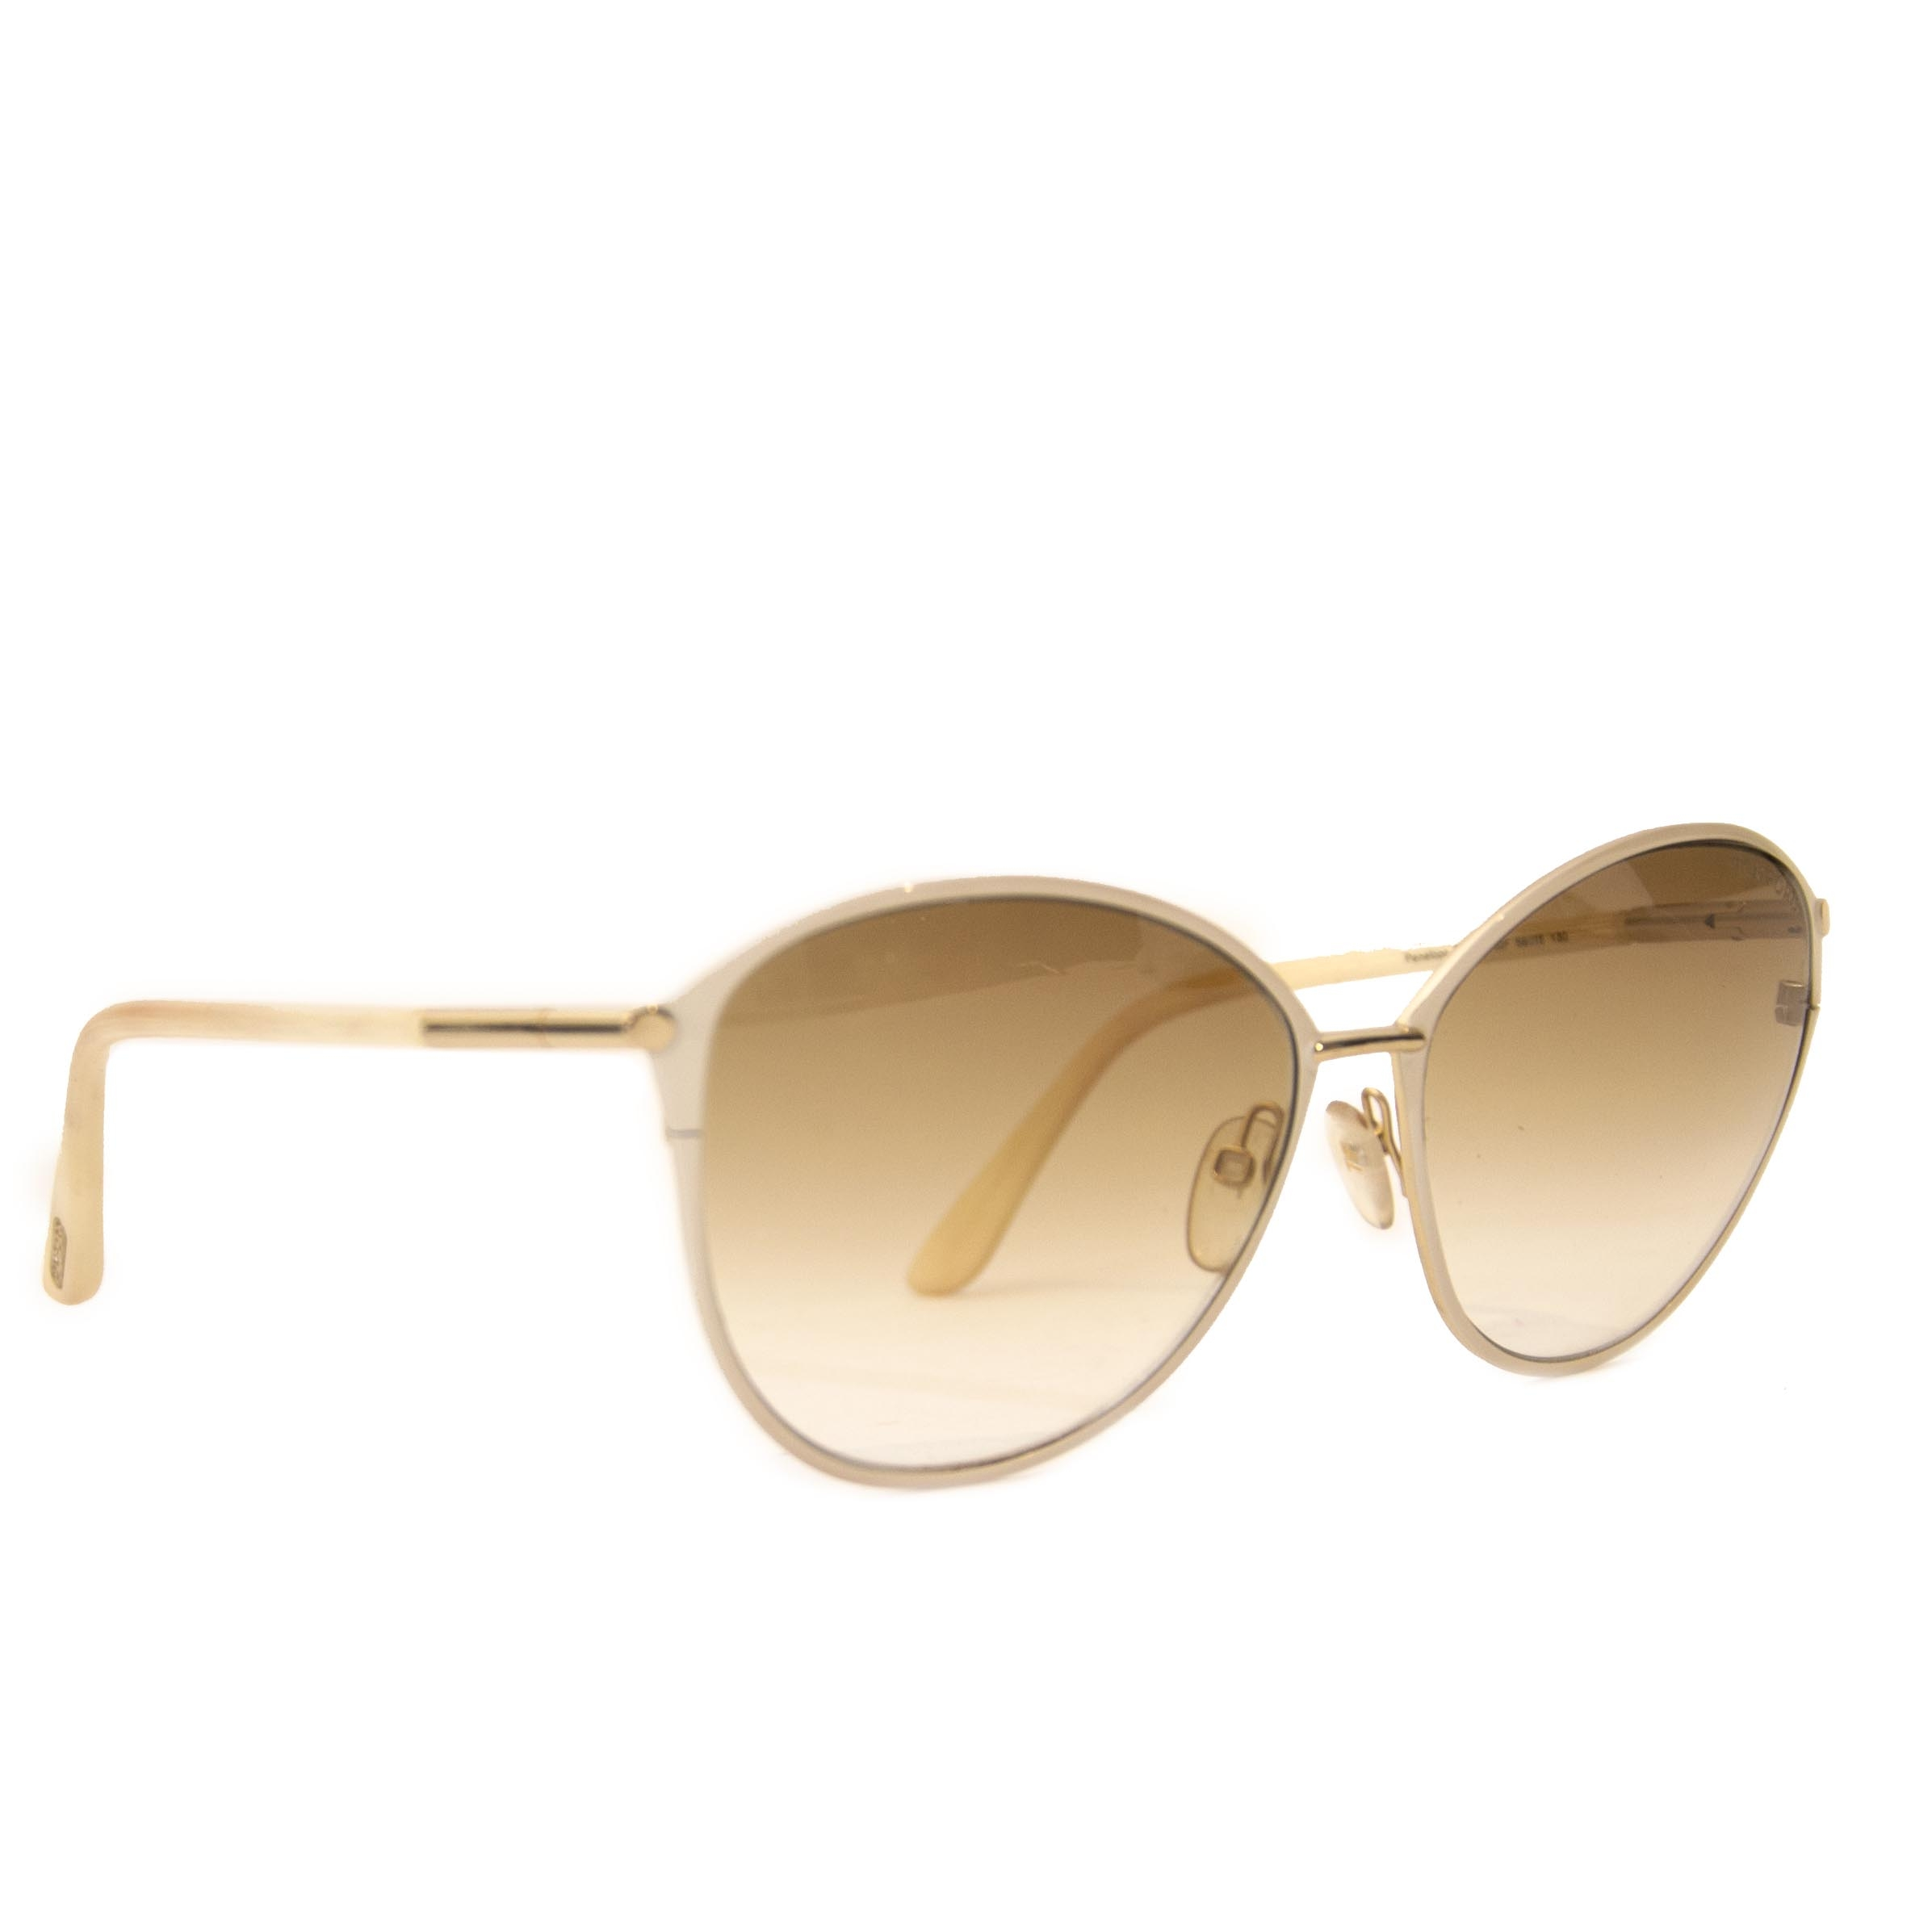 6490090d23d4 ... Authentic second hand vintage Tom Ford Penelope Sunglasses buy online  webshop LabelLOV